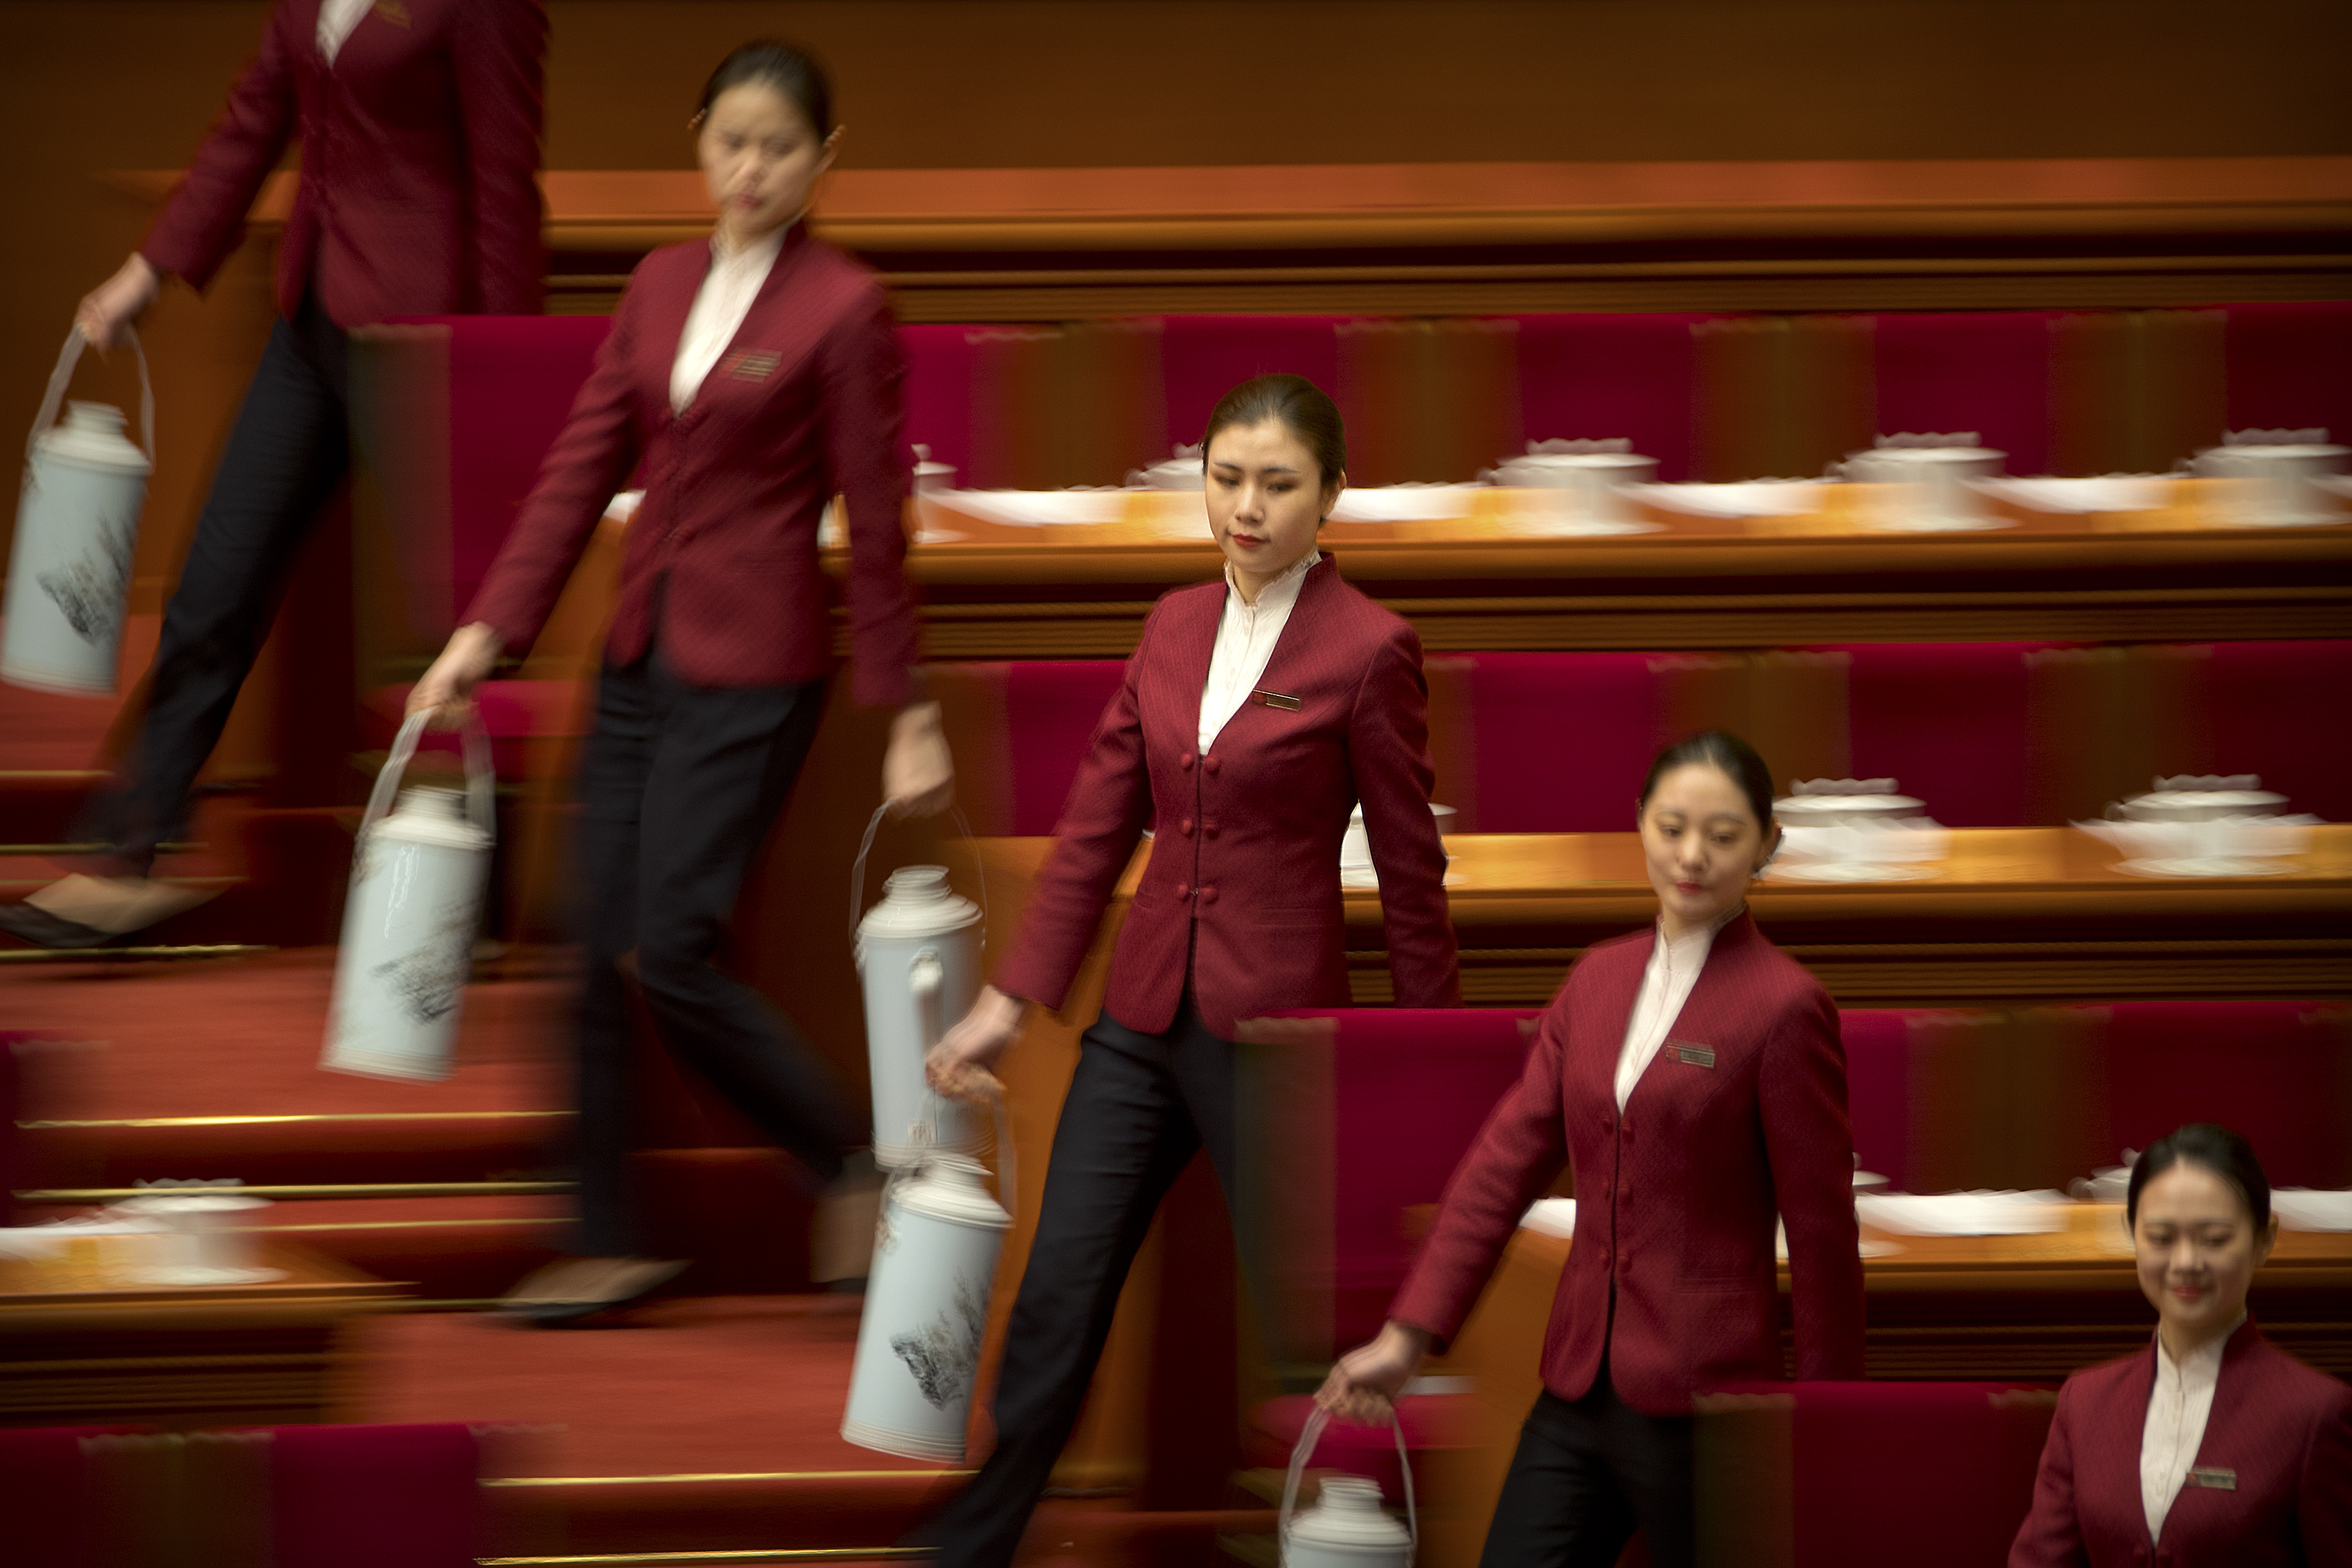 Hostesses carry flasks of water to fill teacups for delegates before the closing session of the Chinese People's Political Consultative Conference (CPPCC) at the Great Hall of the People in Beijing, Wednesday, March 13, 2019. (AP Photo/Mark Schiefelbein)